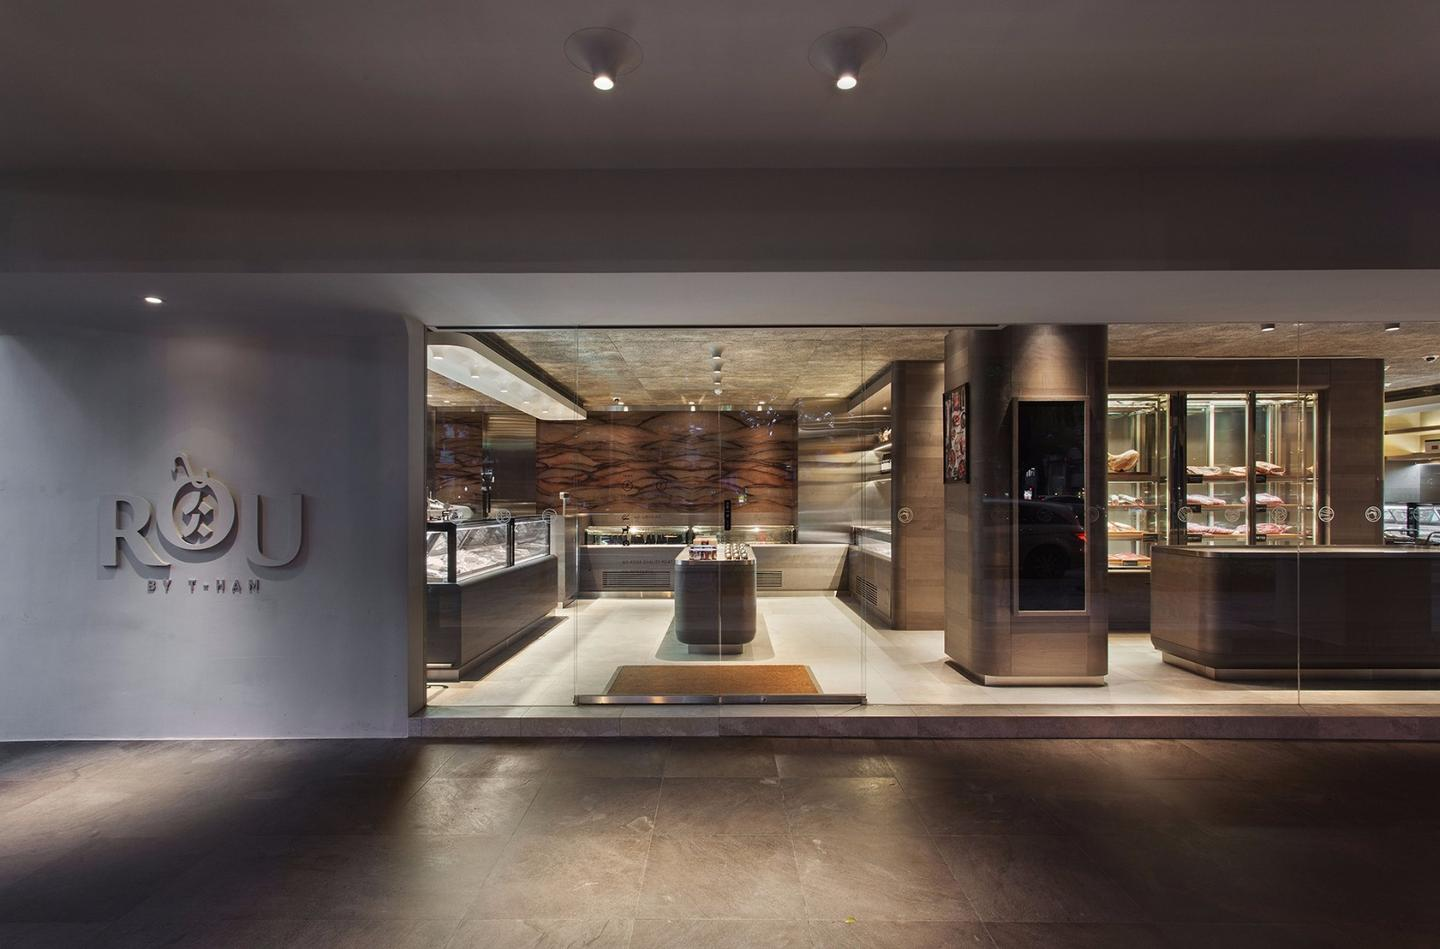 The ROU concept store interior in Taiwan, by WZWX Architecture, was the winner of the Retail category at the 2017 Inside Awards